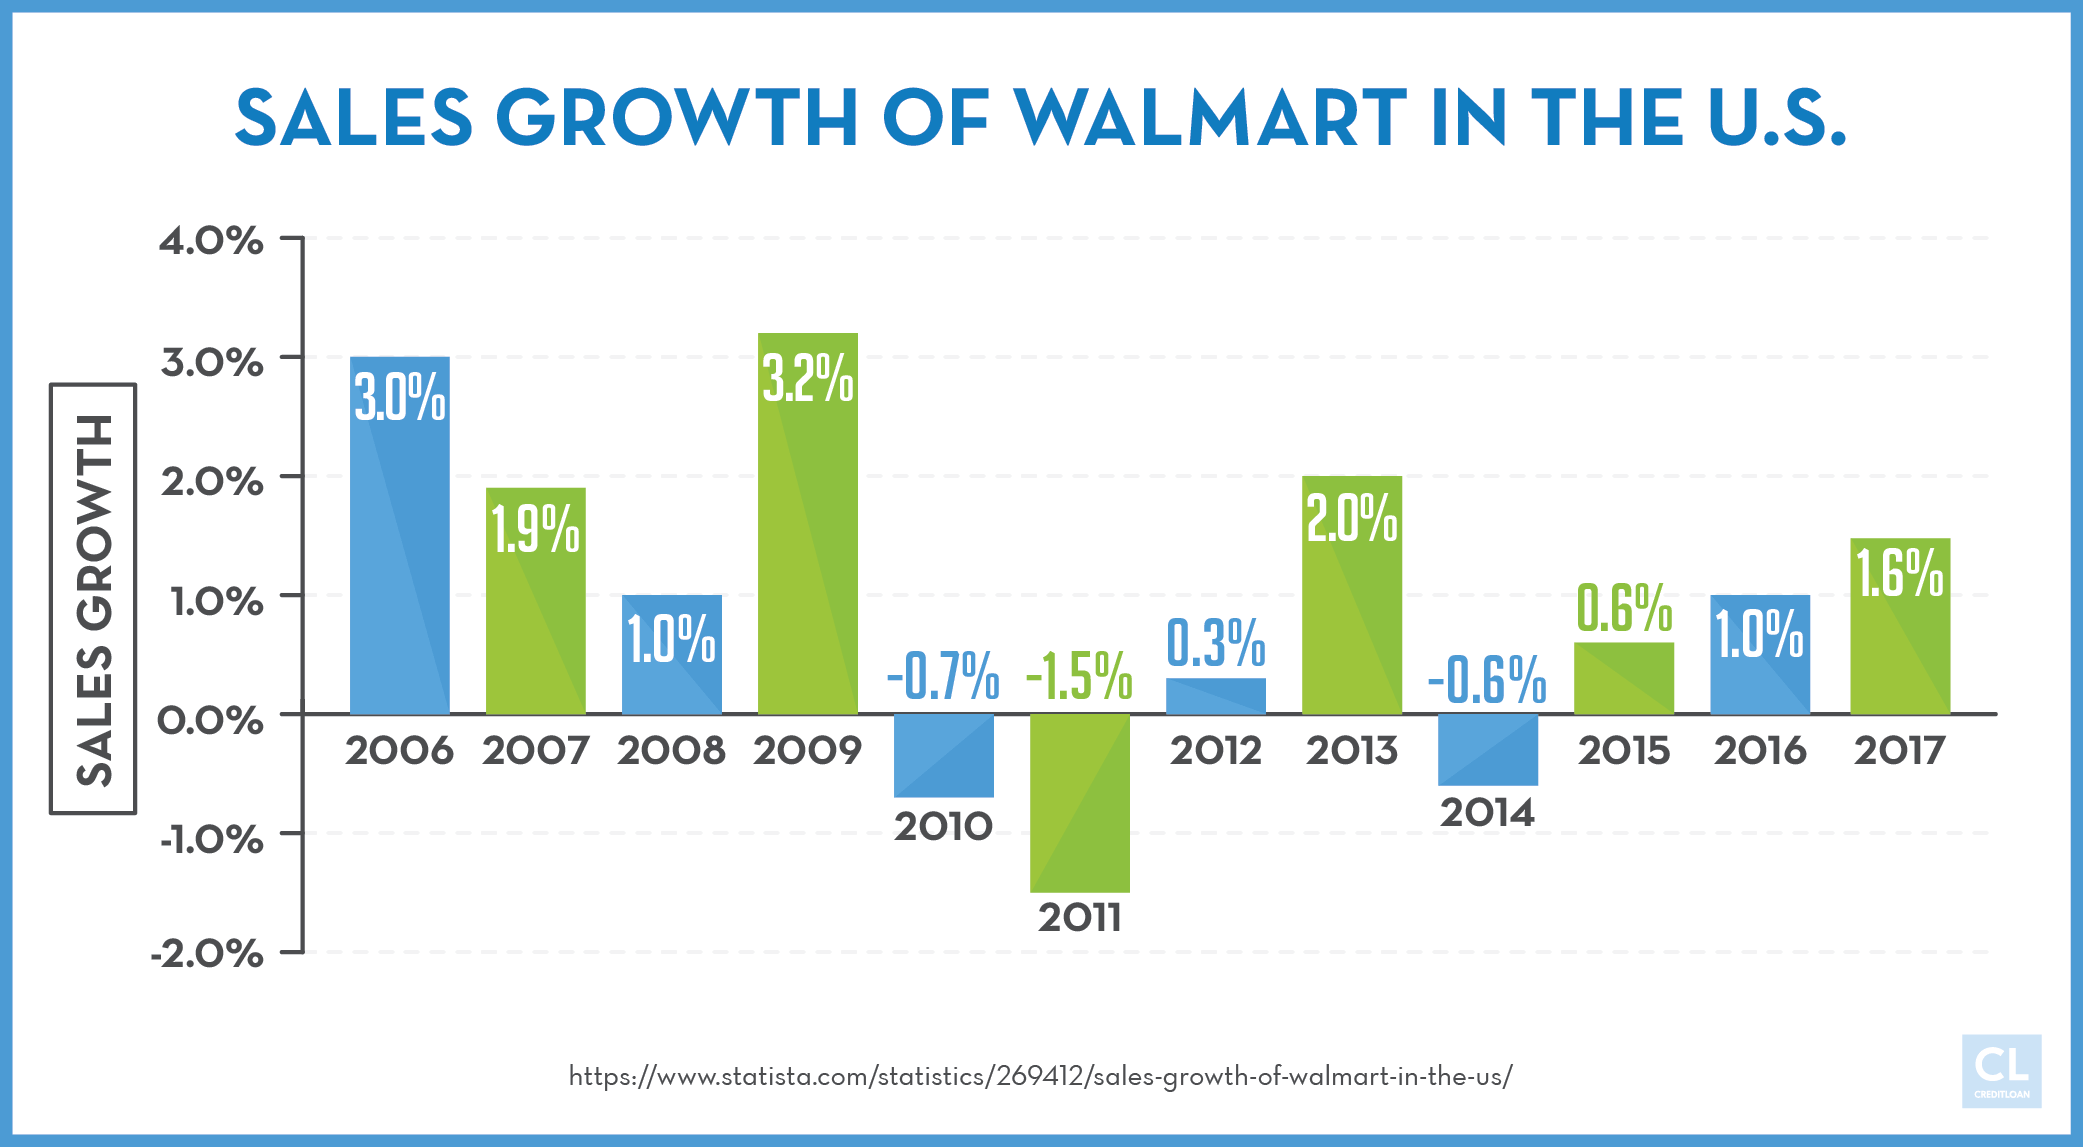 sales growth of walmart in the U.S.